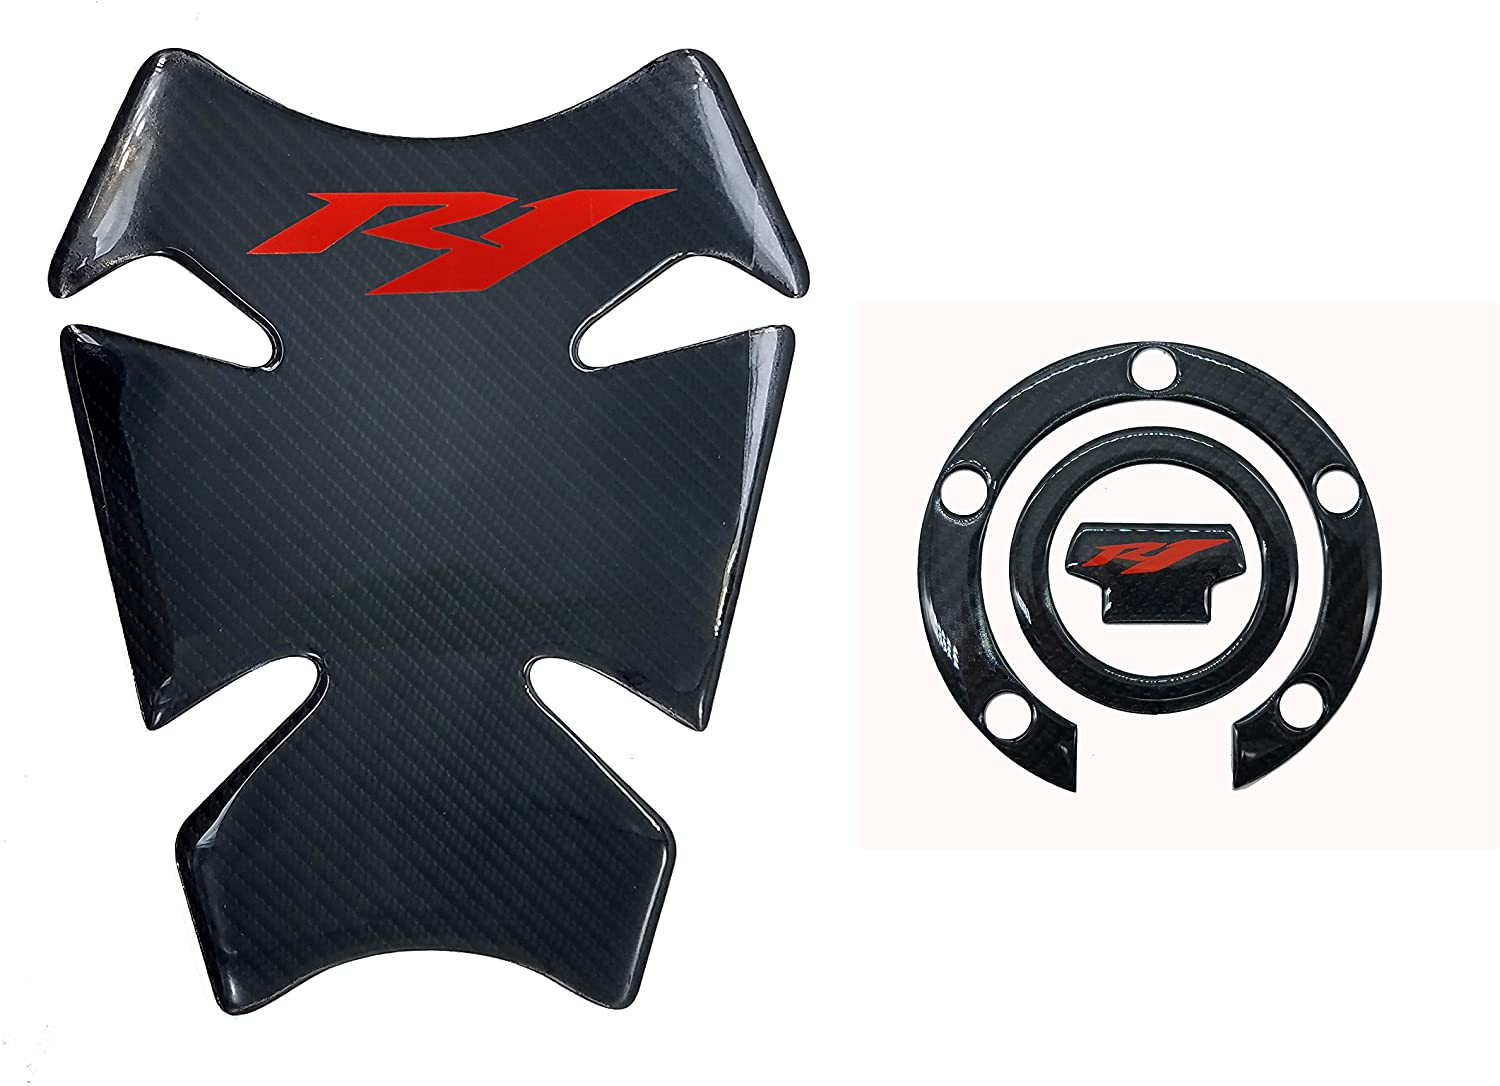 8.7 inches Real Carbon Fiber 3D Sticker Vinyl Decal Emblem Protection Gas Tank Pad & Cap Cover For YAMAHA YZF R1 2000-2015